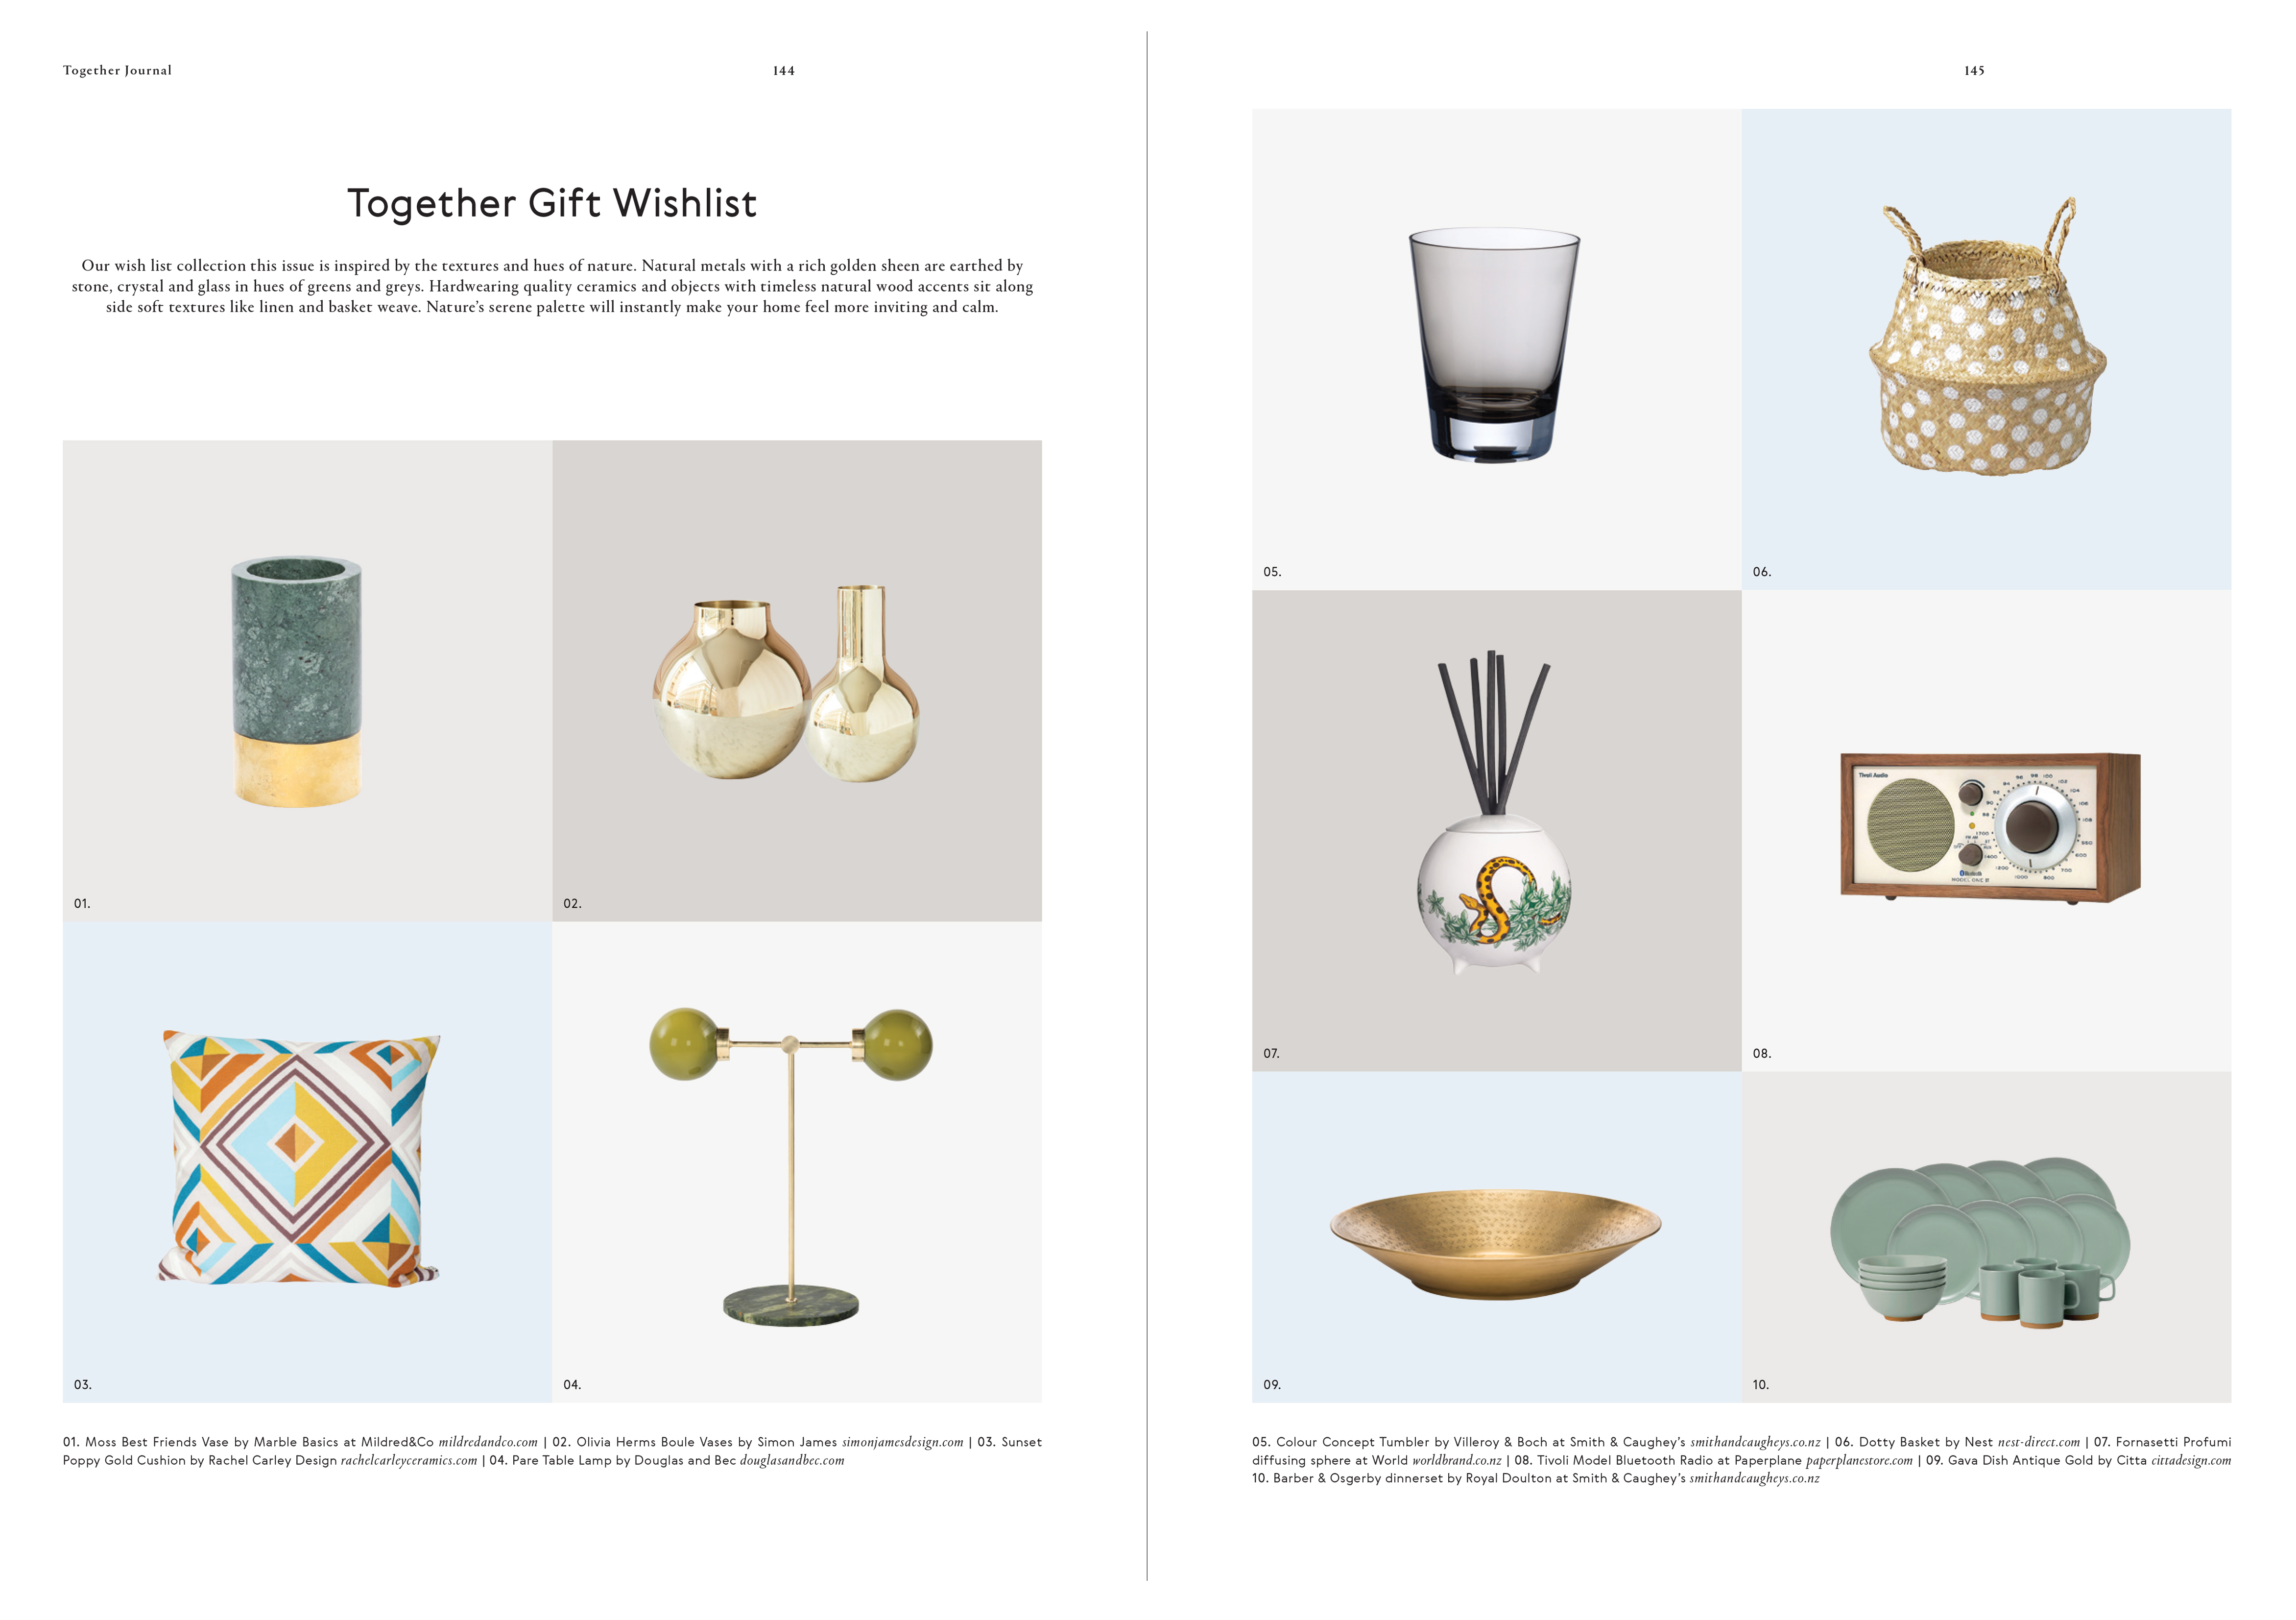 Categories: Weddings-Together Gift Wishlist Issue 6